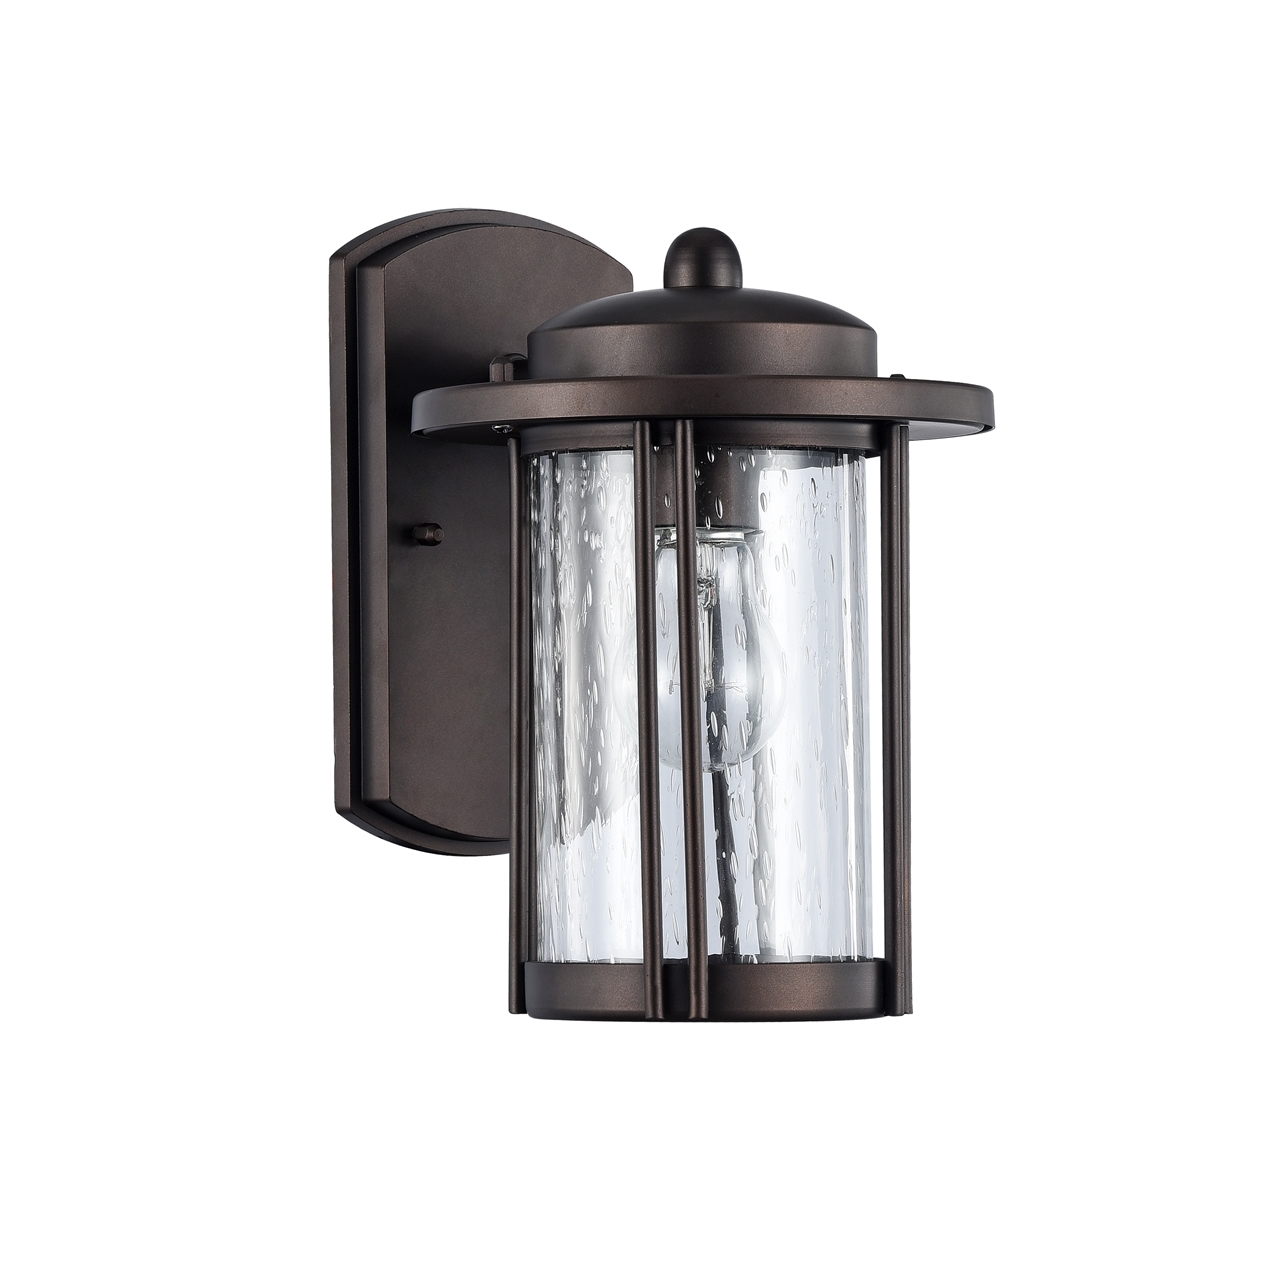 Picture Of Ch22059rb11 Od1 Outdoor Sconce